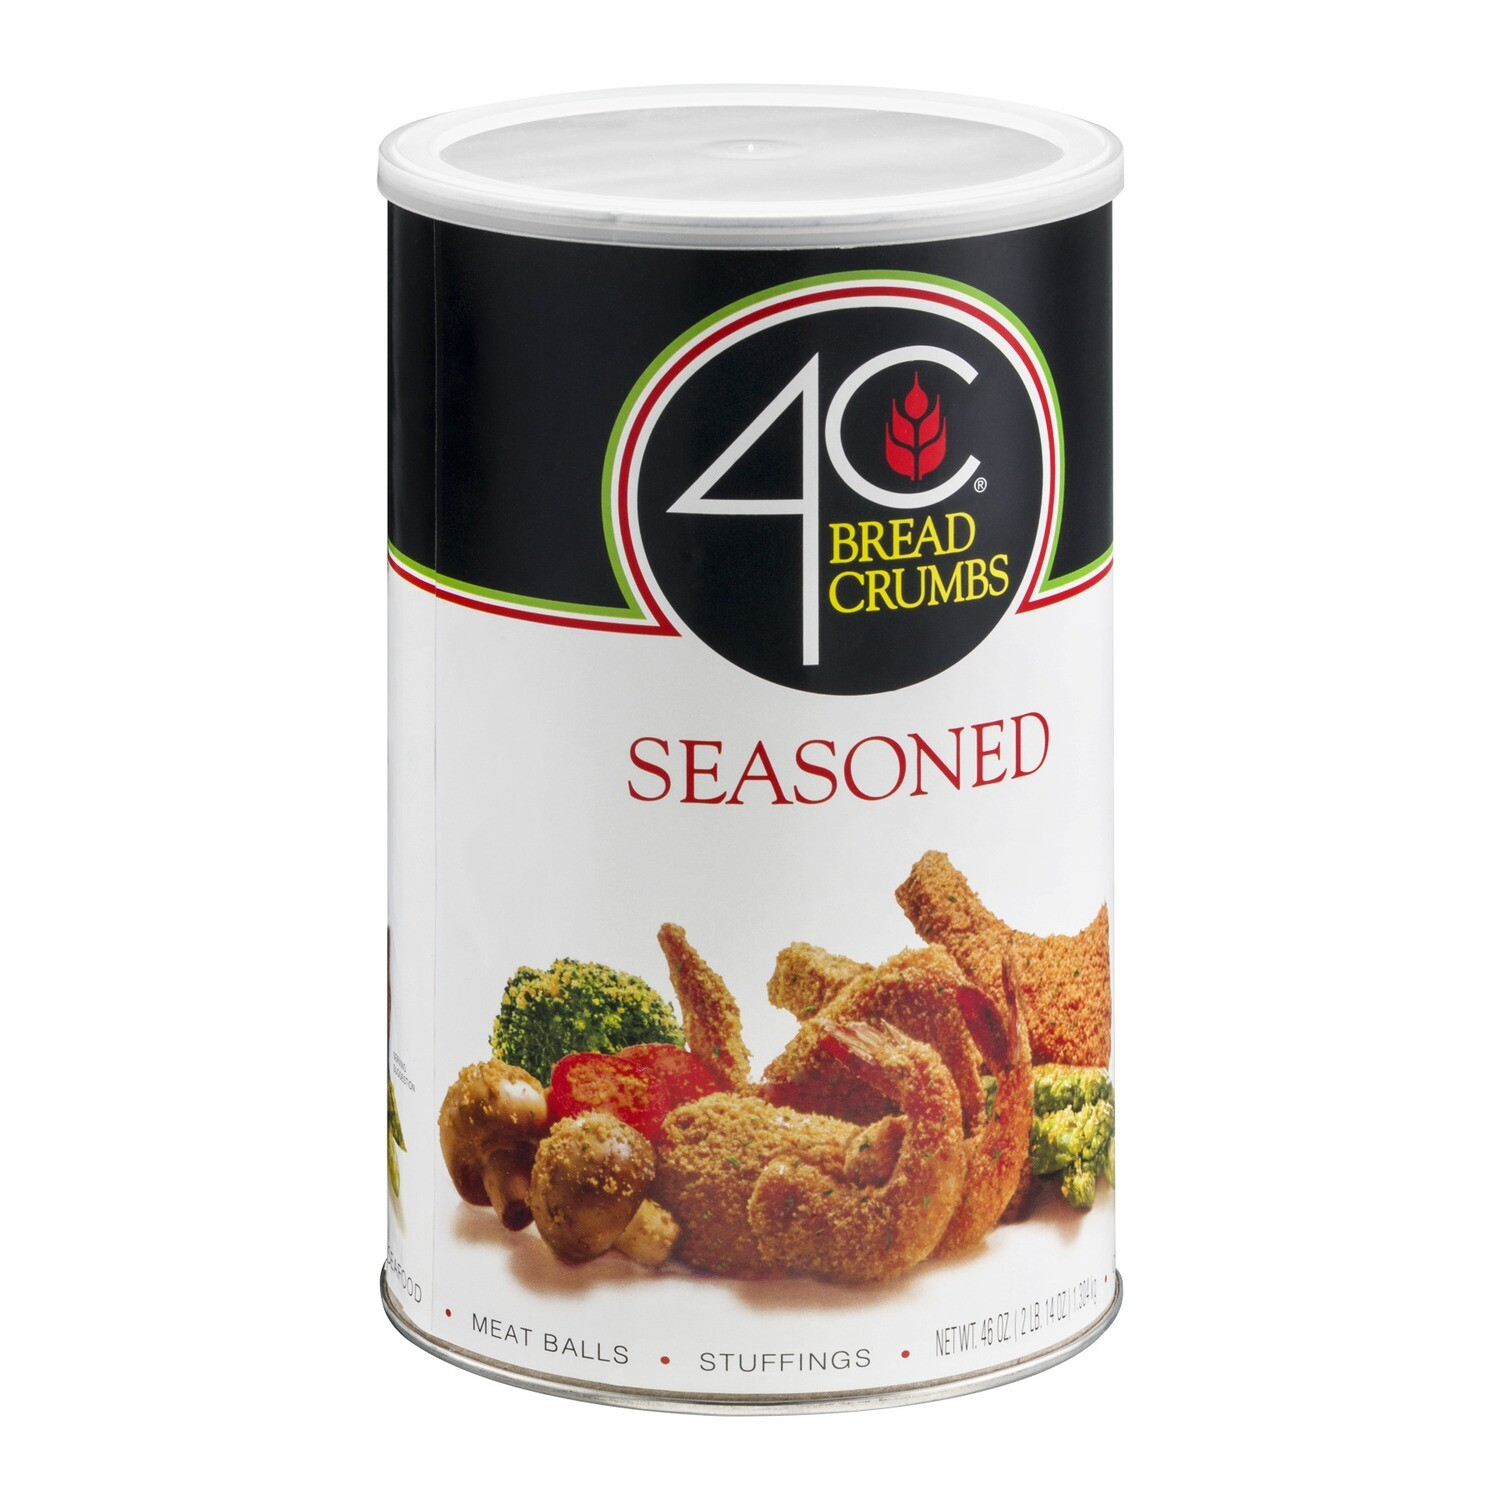 * Flavored Bread Crumbs 46 Ounces